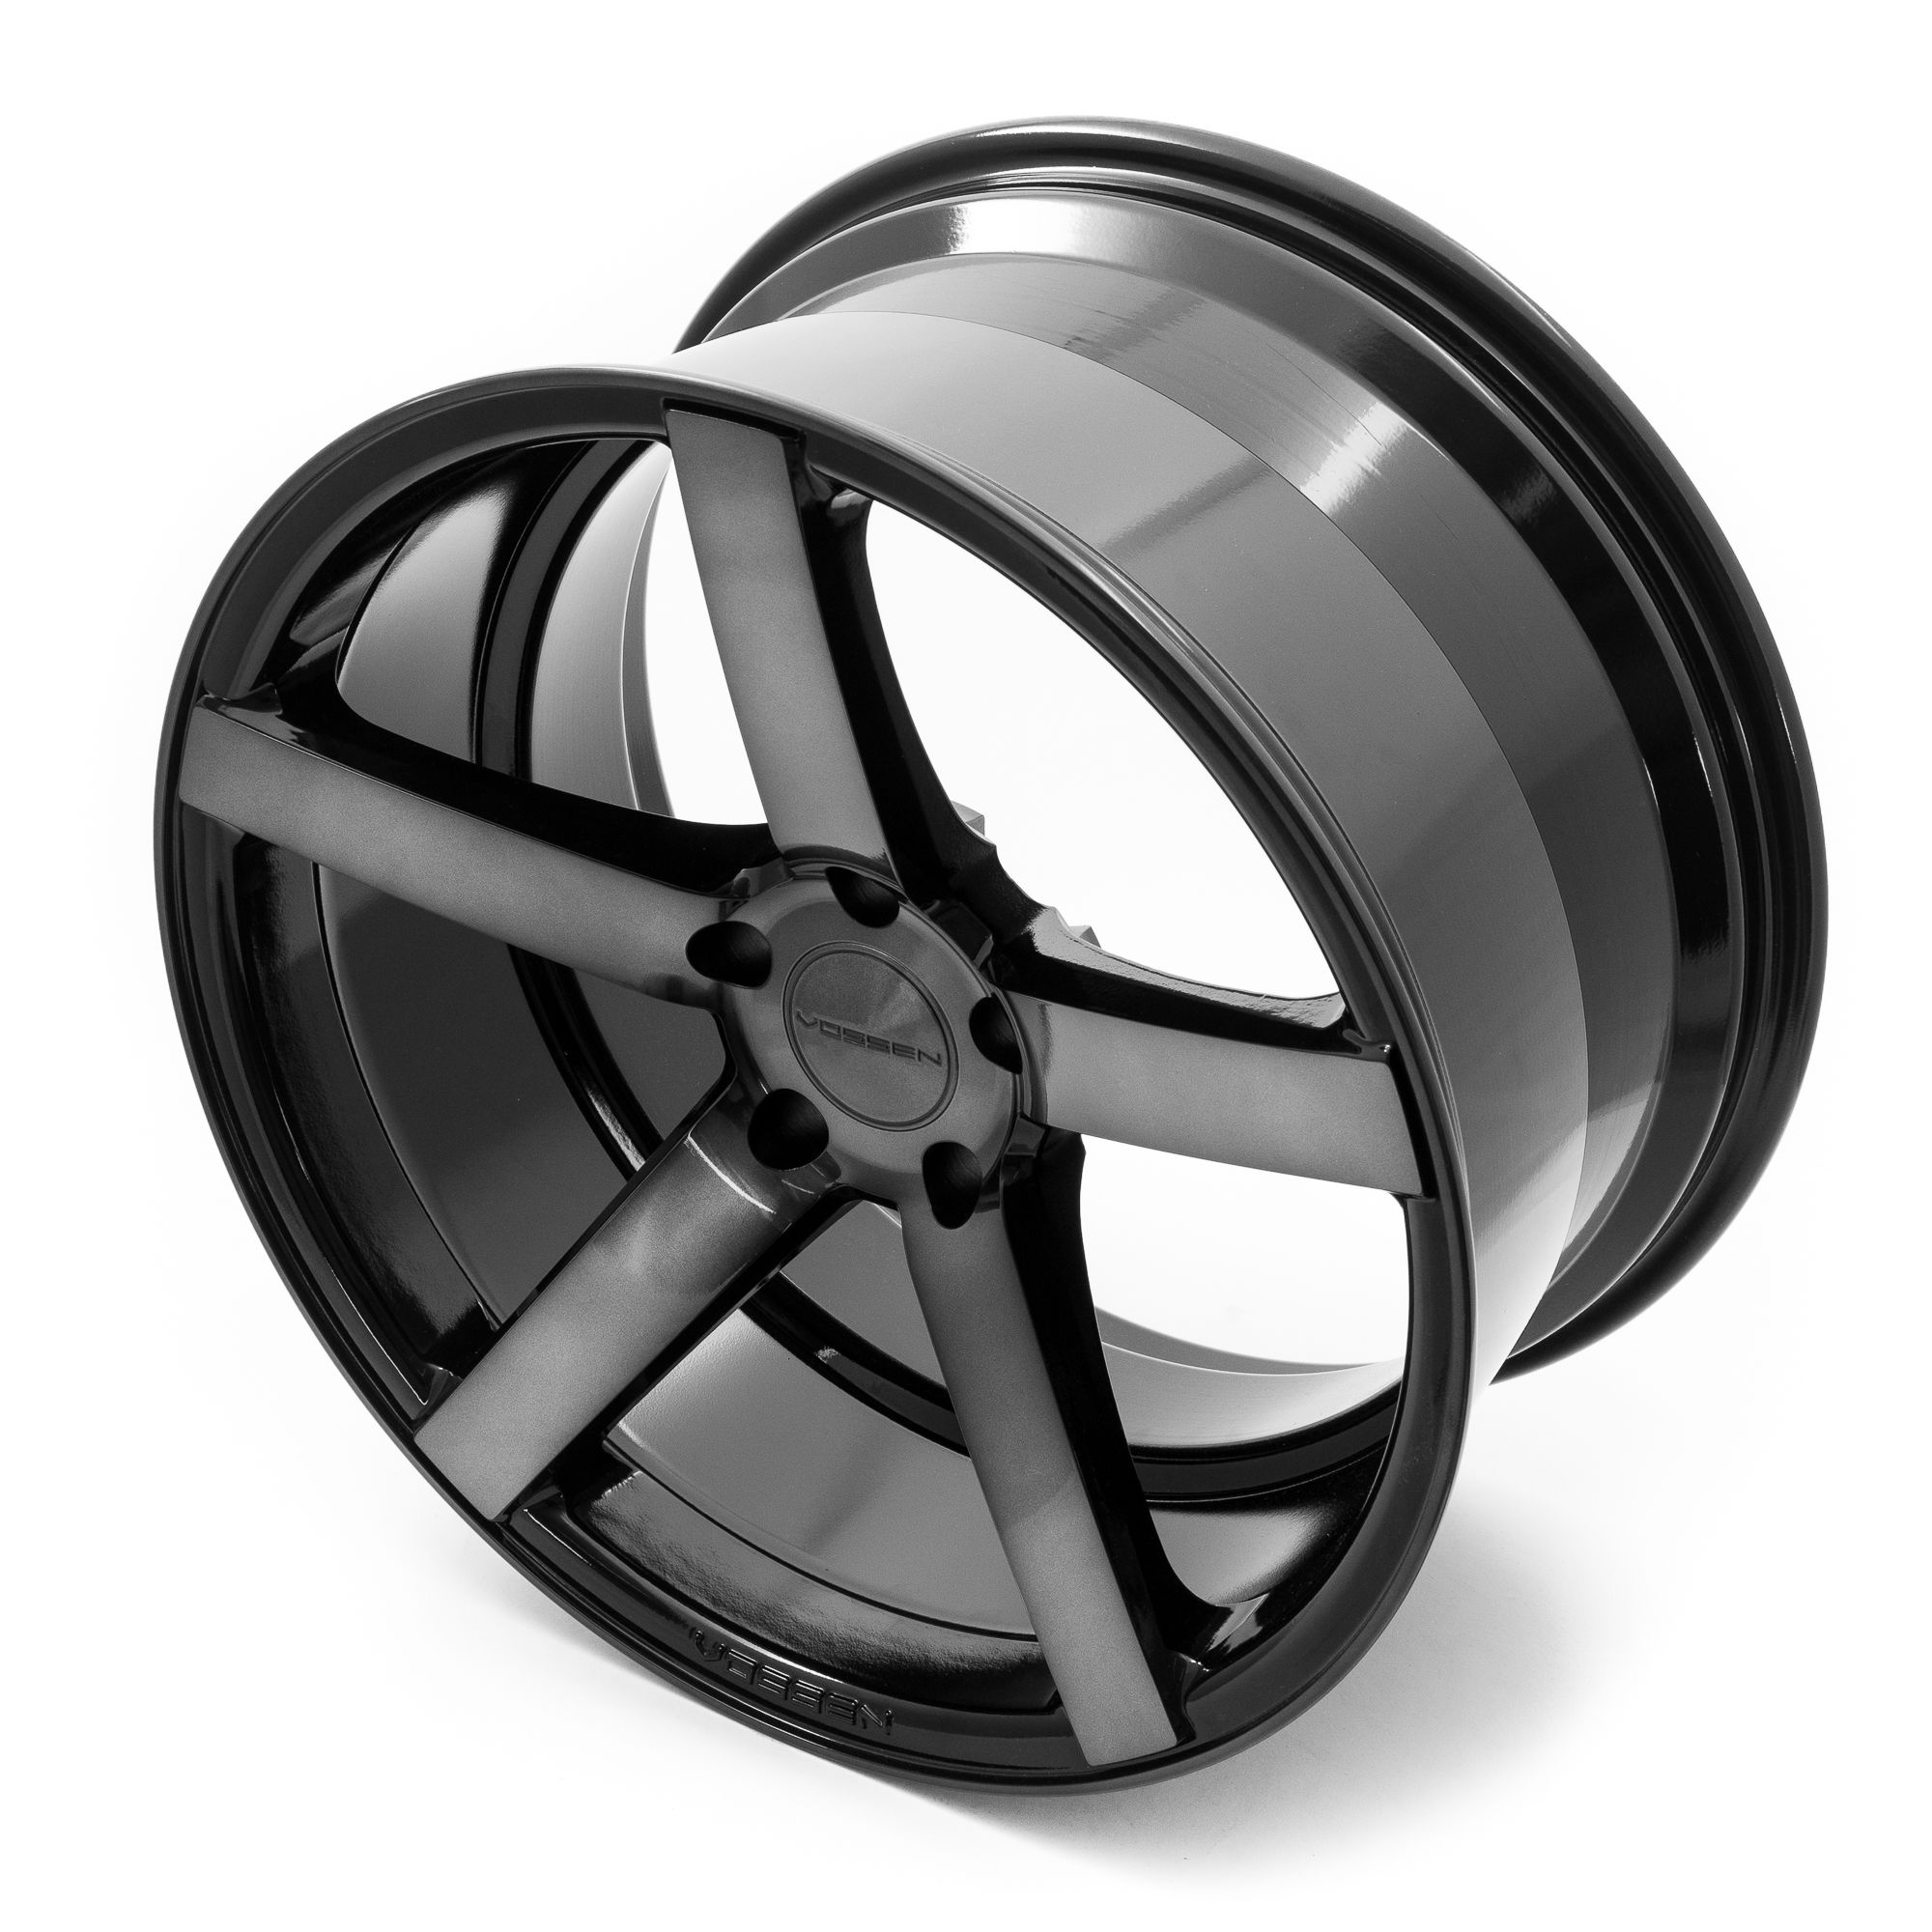 vossen cv3r deep face felgen graphit grau in 22 zoll. Black Bedroom Furniture Sets. Home Design Ideas